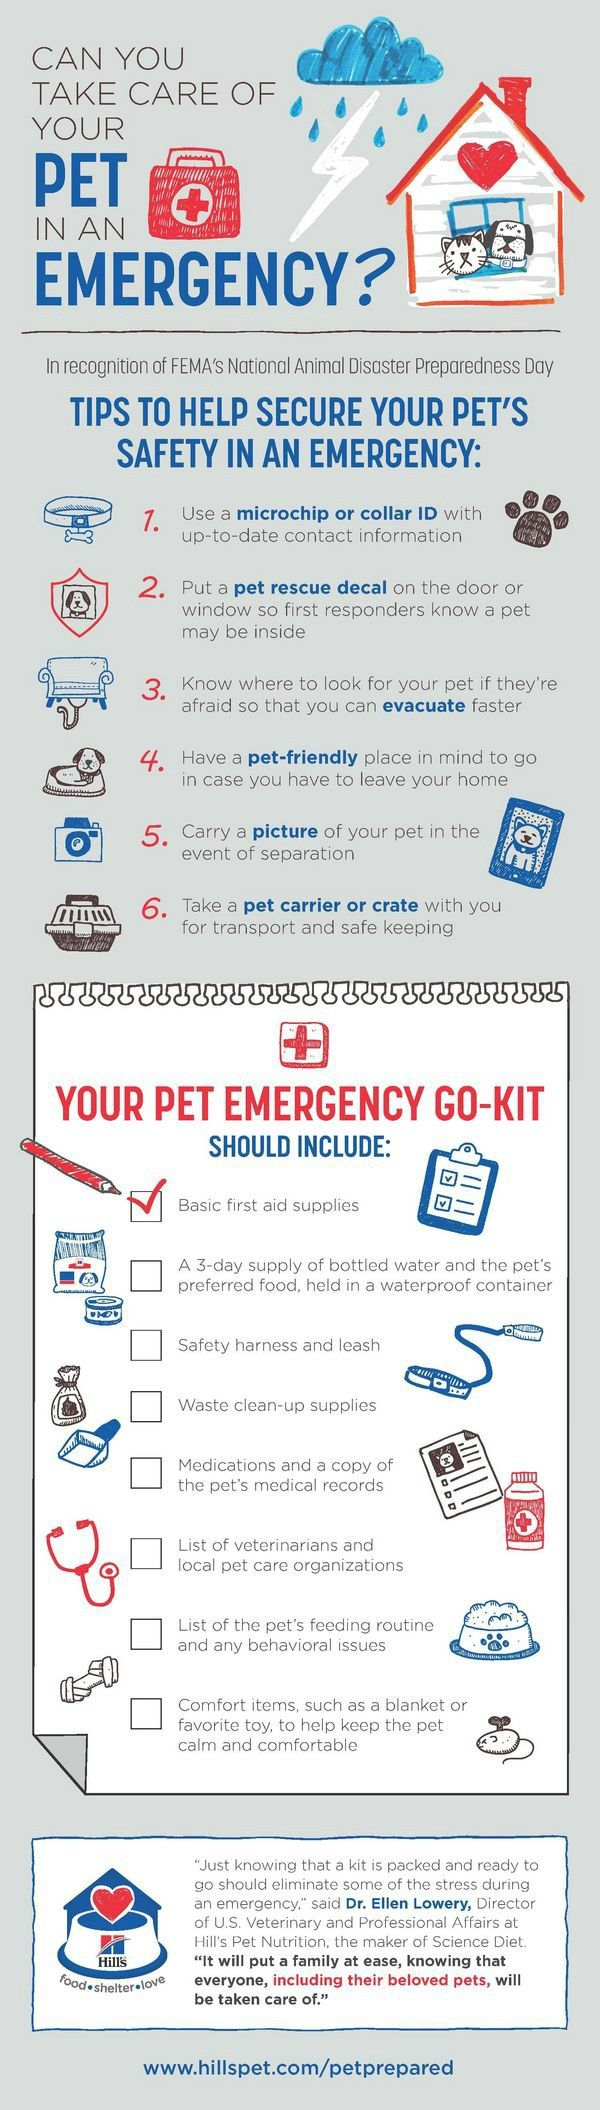 Best 25 dog care ideas on pinterest human food for dogs infographic can you take care of your pet in an emergency be petprepared nvjuhfo Choice Image